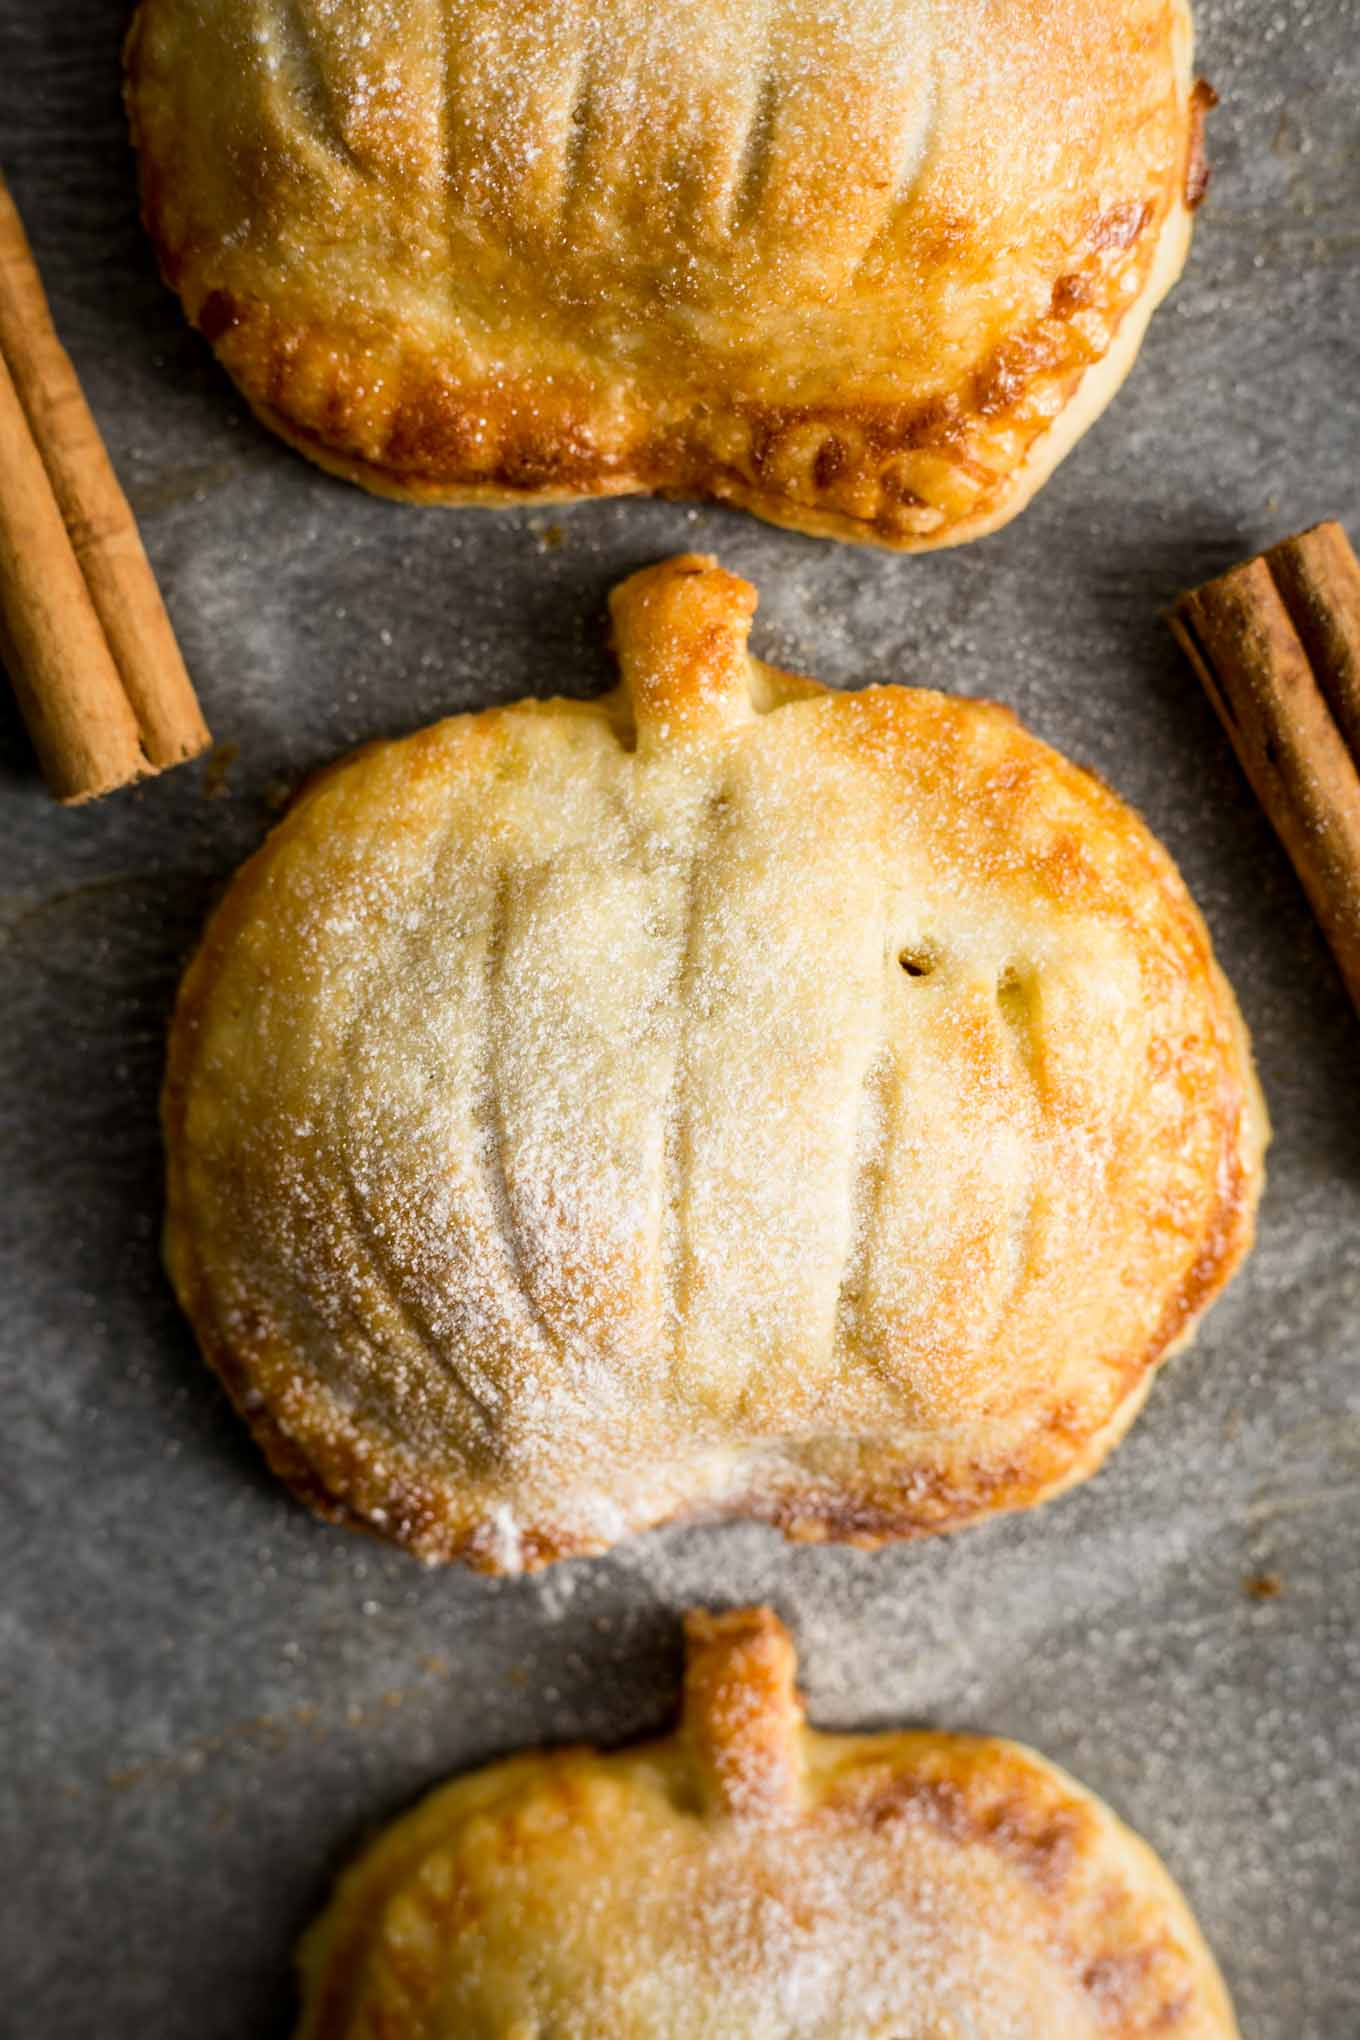 Spiced Apple and Pumpkin Hand Pies - Love apple desserts? Get your fall baking on with these 15 delicious and easy apple dessert recipes including the best apple pies, cakes, apple crisp, and more! #applerecipes #appledesserts #baking #fallbaking